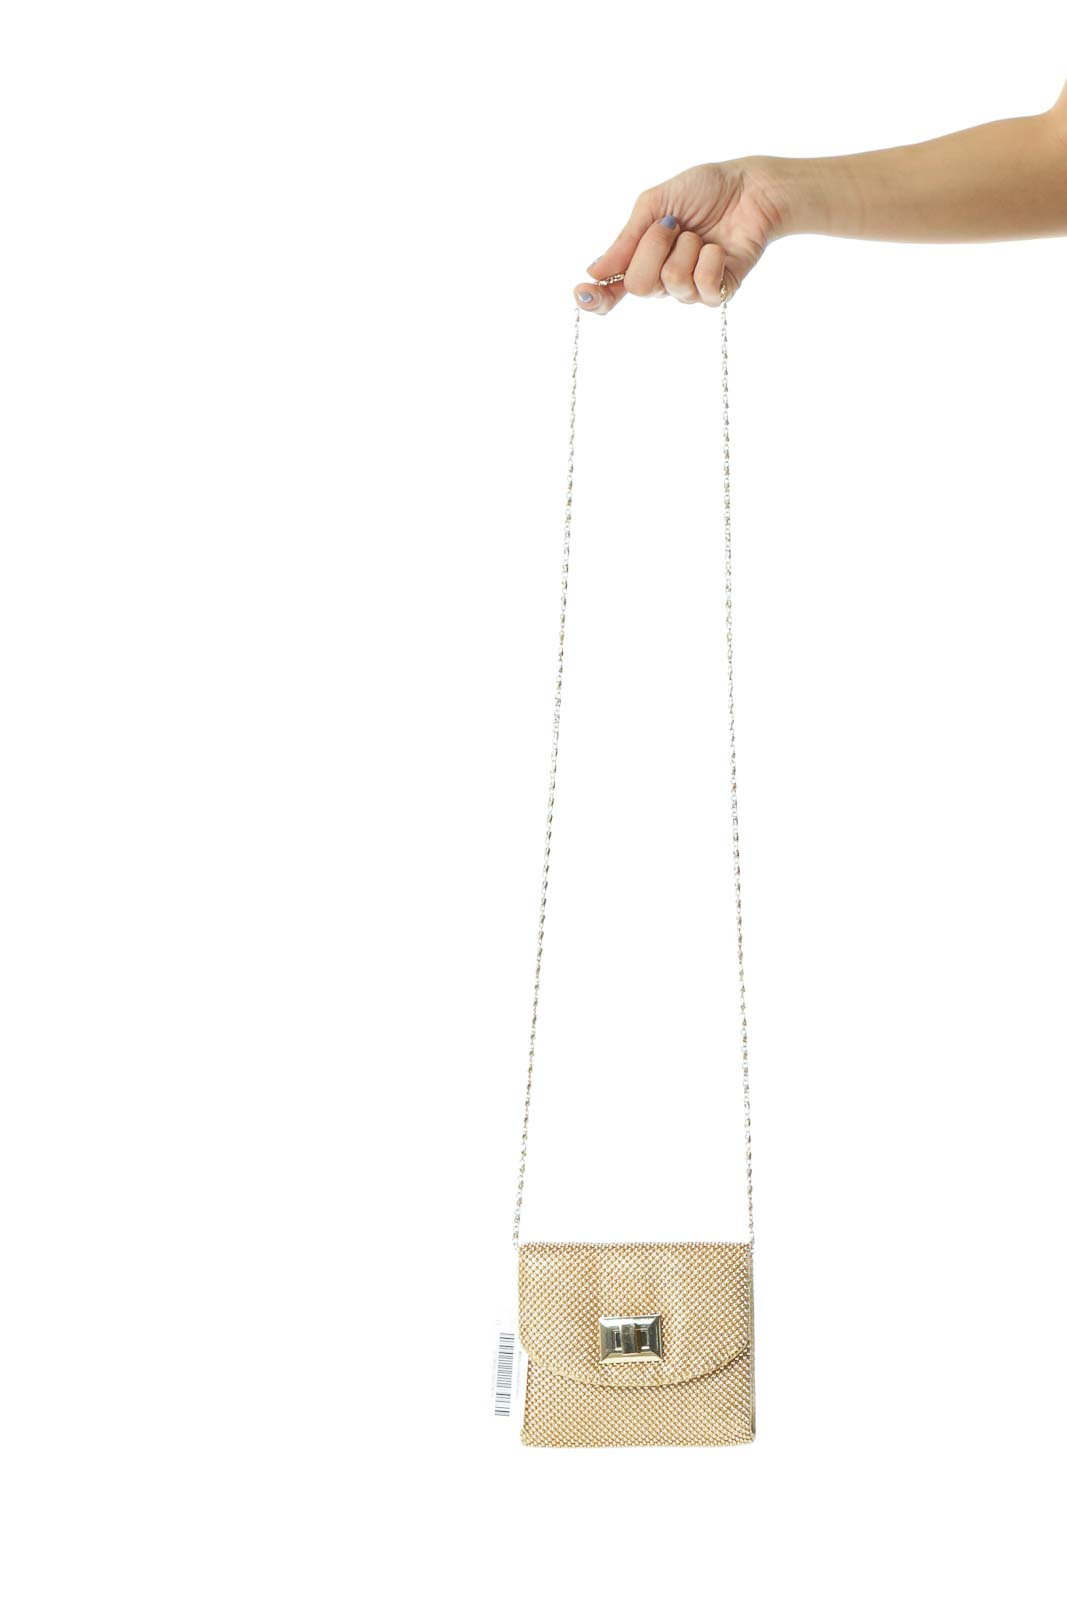 Gold Metallic Beads Chain Metallic-Closure Bag